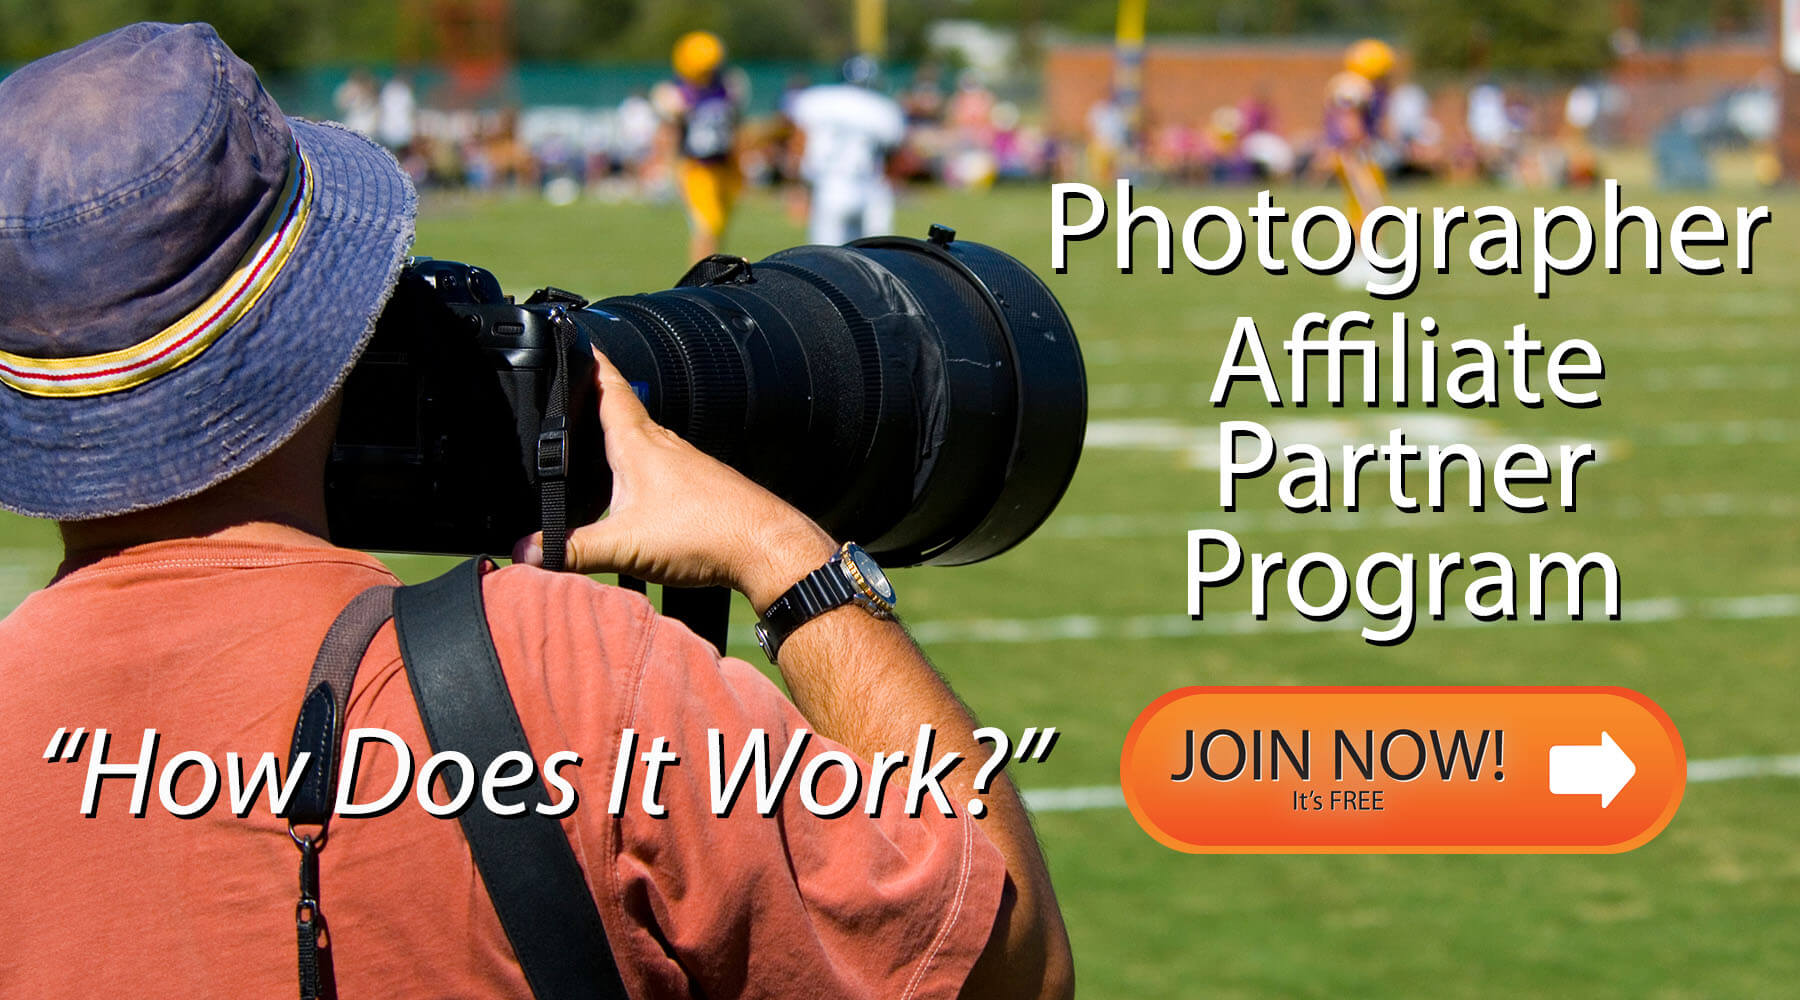 Wallhogs Photographer Affiliate Partner Program | How Does It Work?